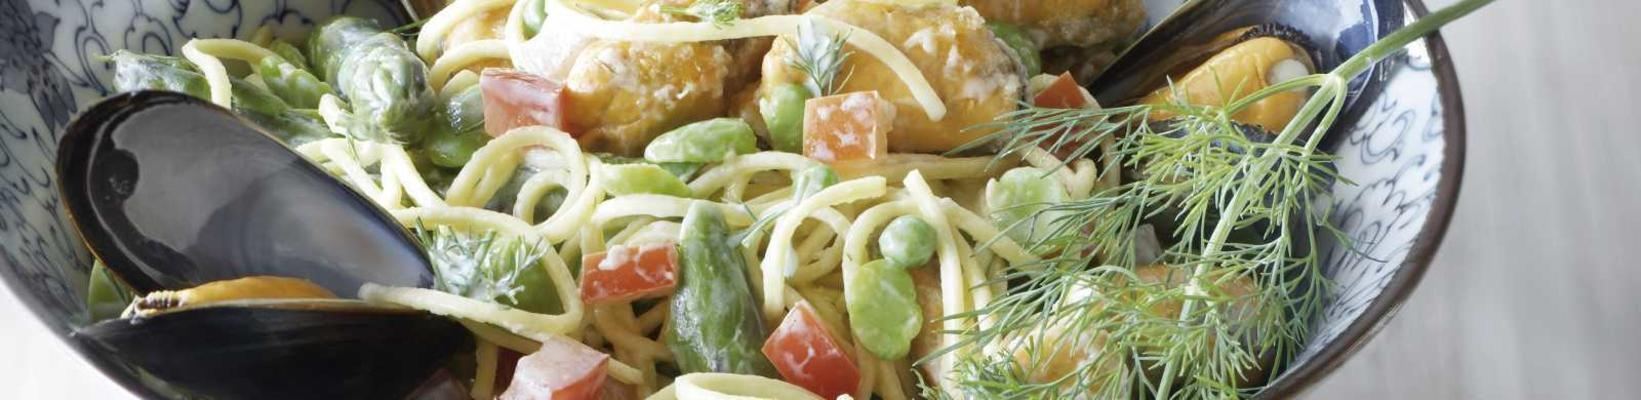 noodle salad with mussels and dill dressing